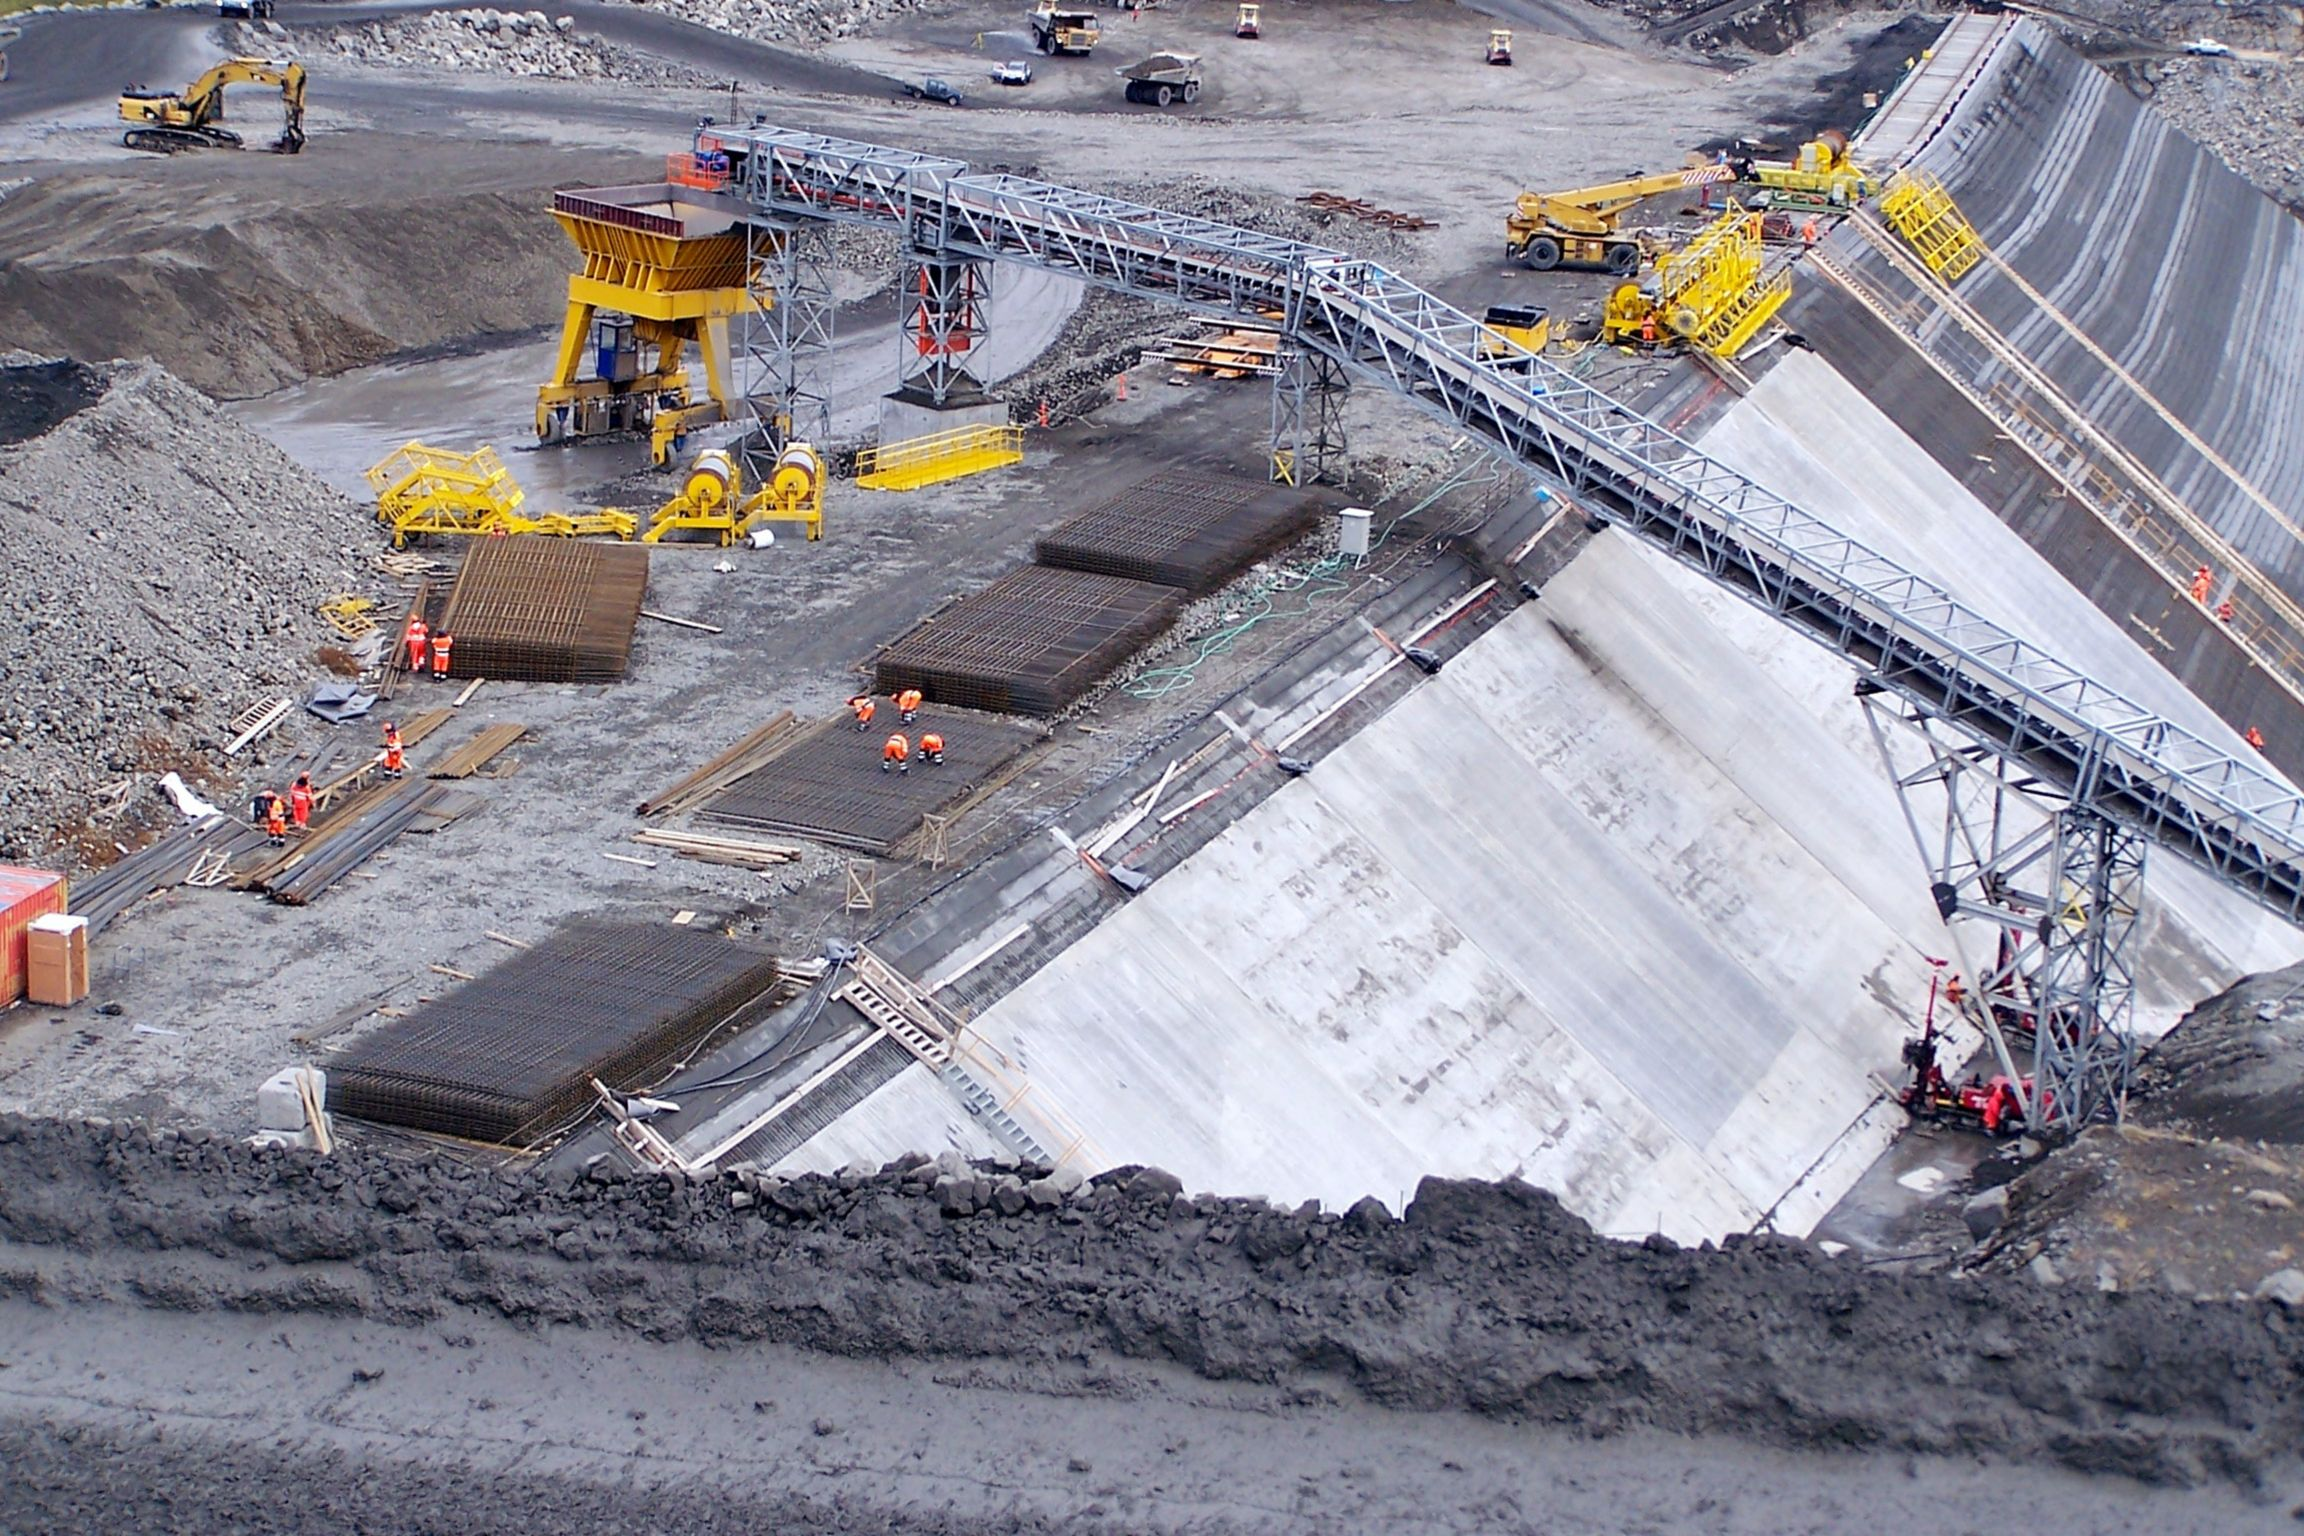 Construction site of Karahnjukar Hydropower Plant in Iceland